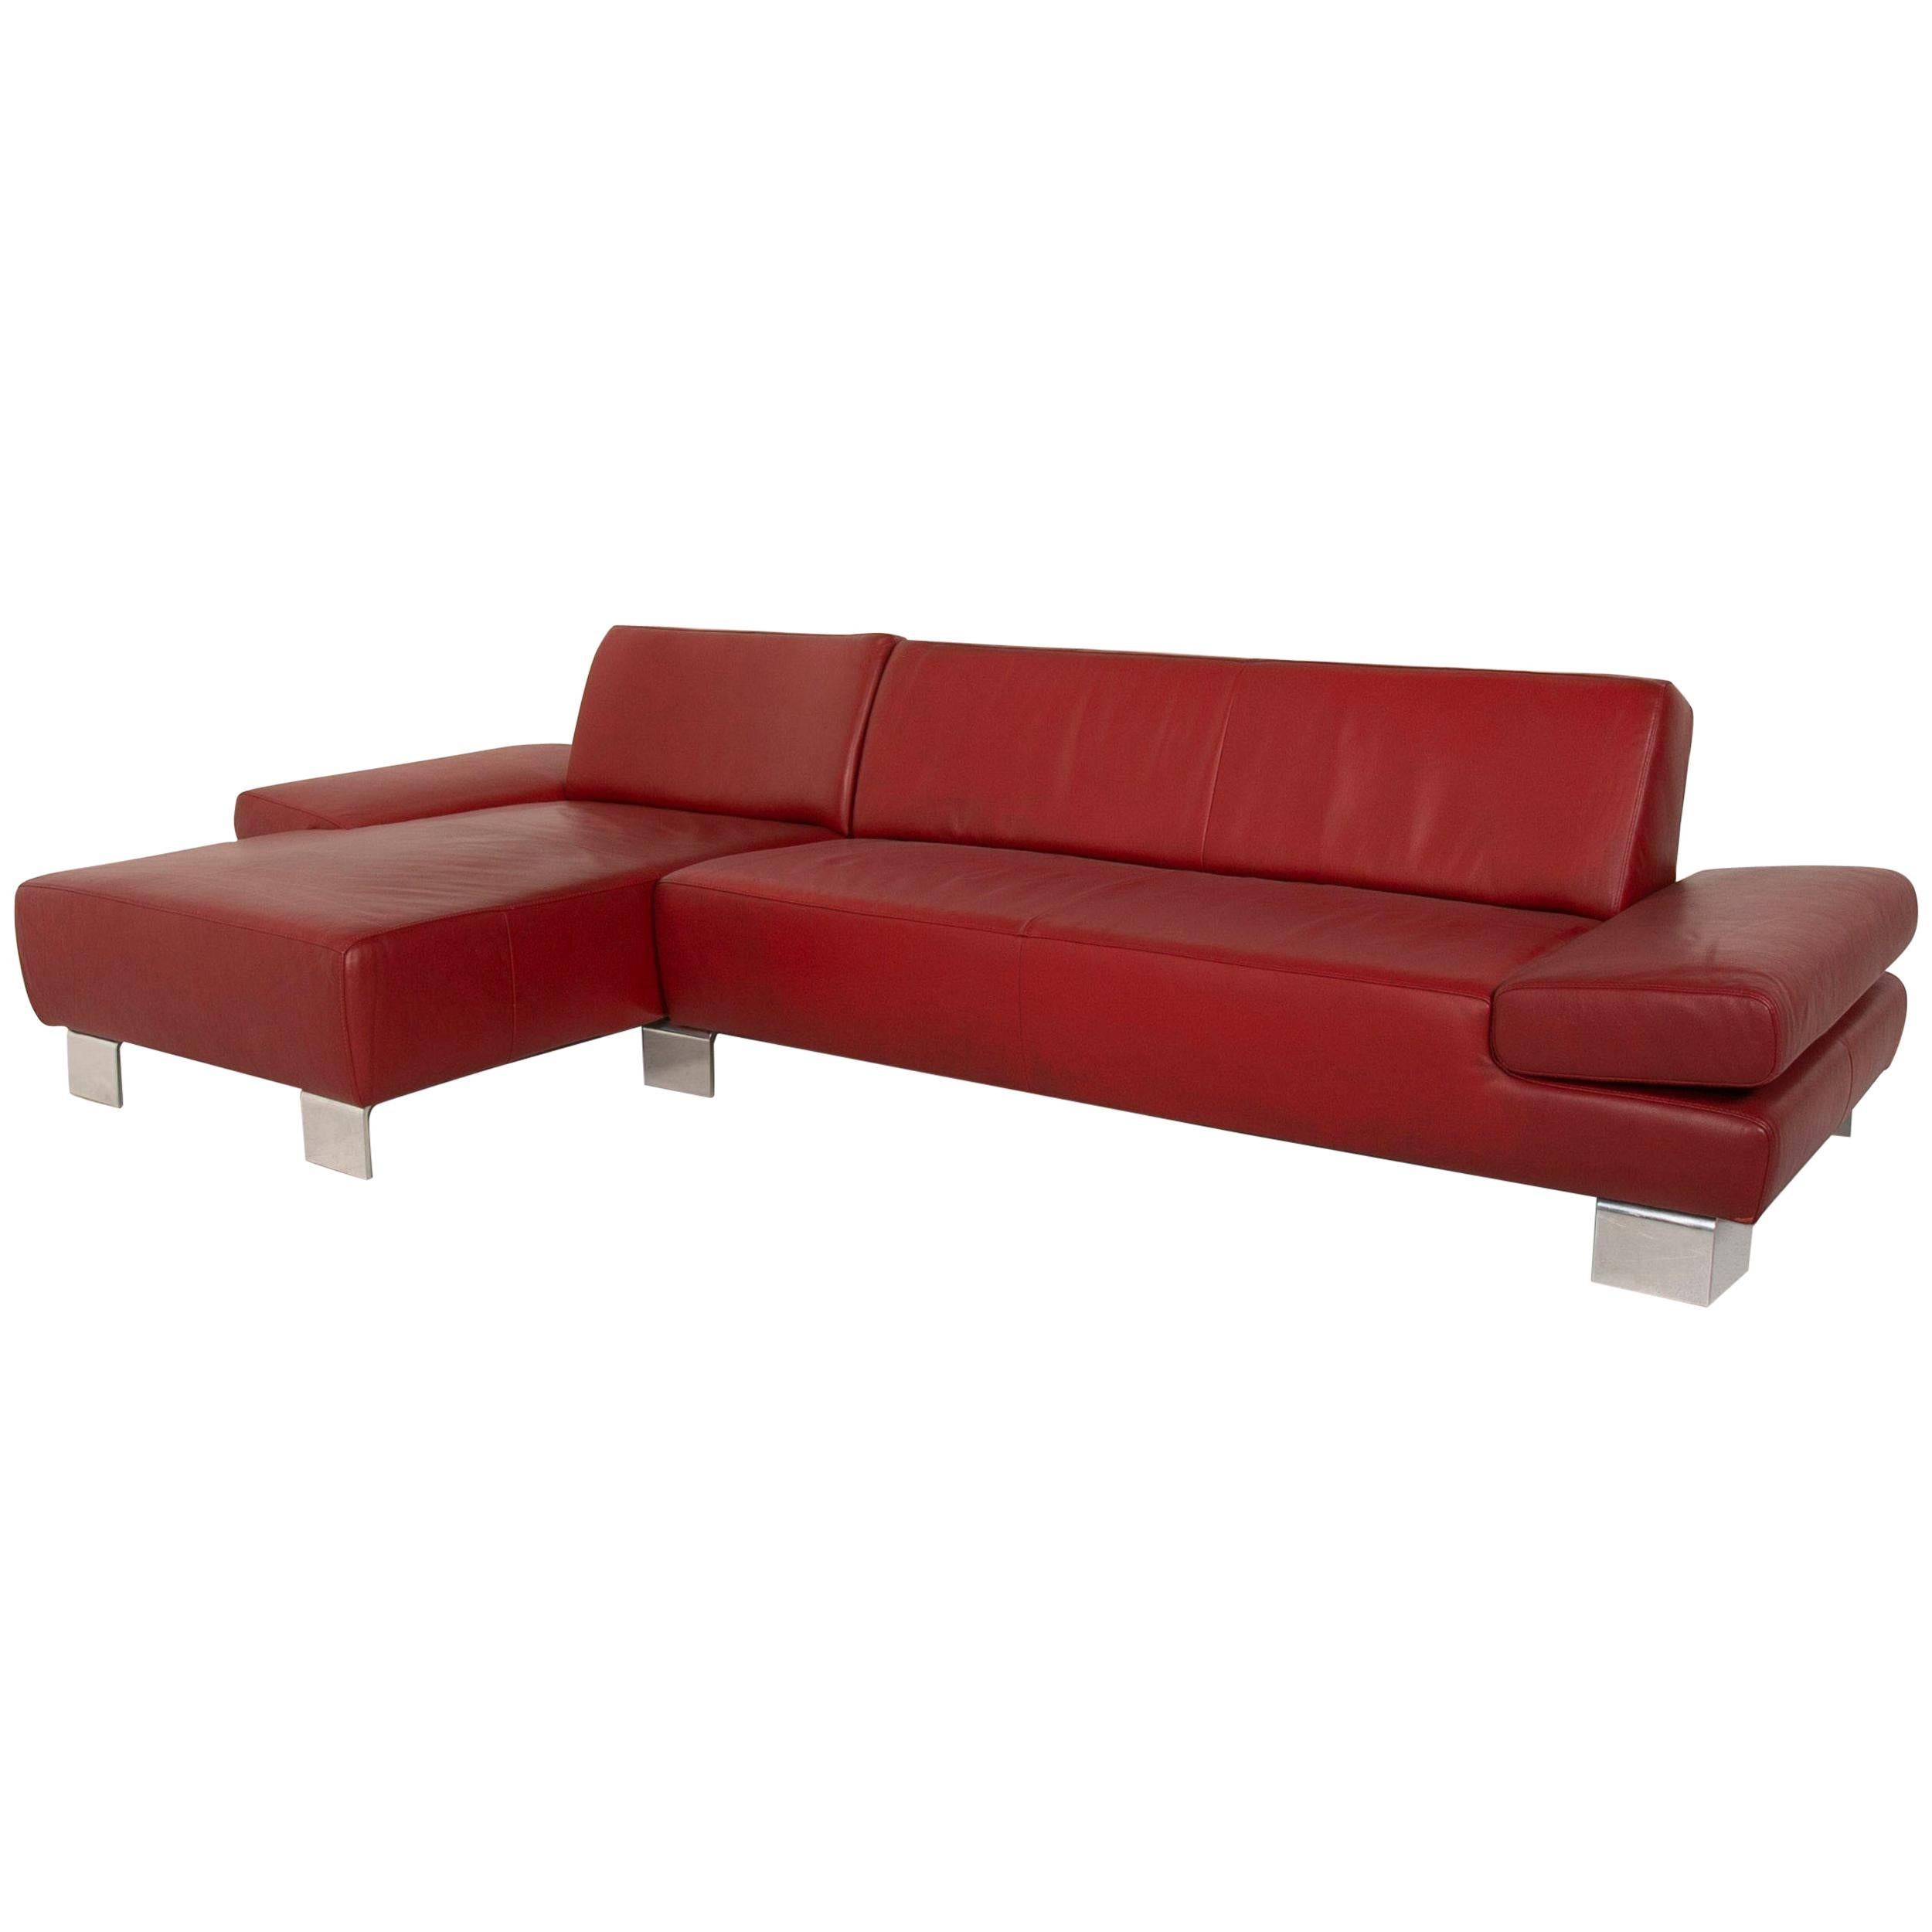 Willi Schillig Leather Sofa Red Corner Sofa